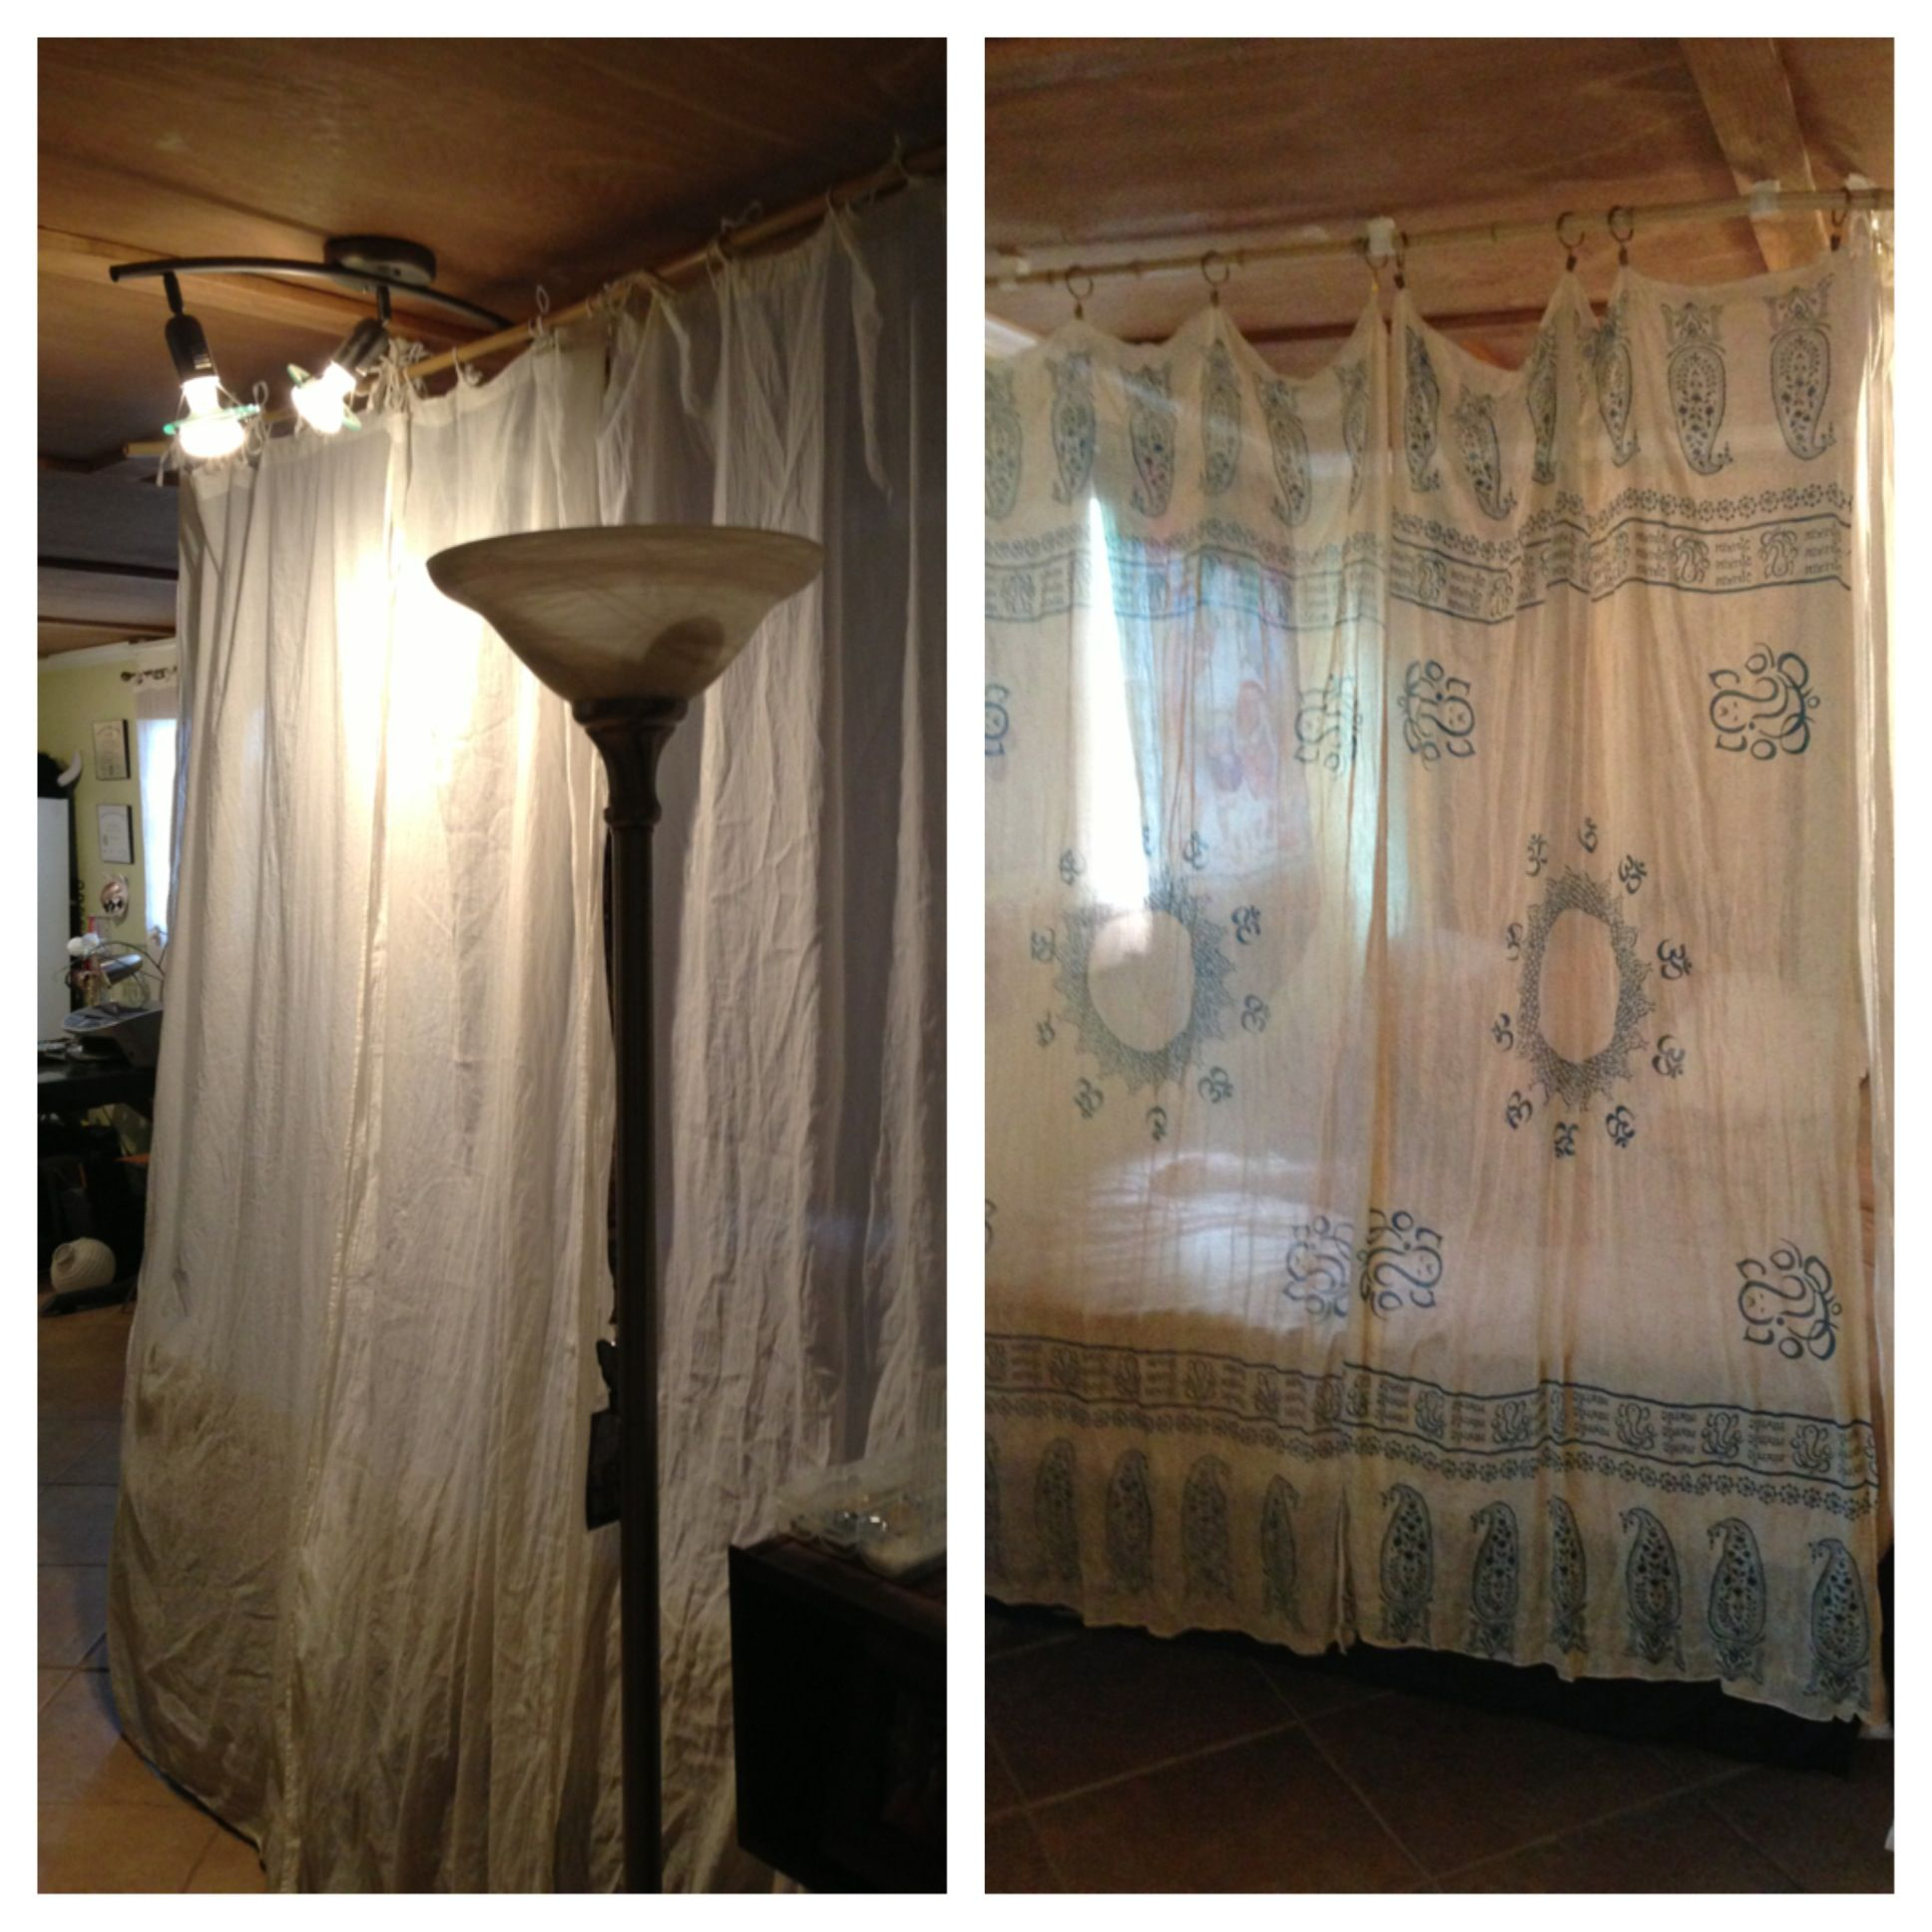 turned 3 crinkle curtains & 2 scarfs from world market into an